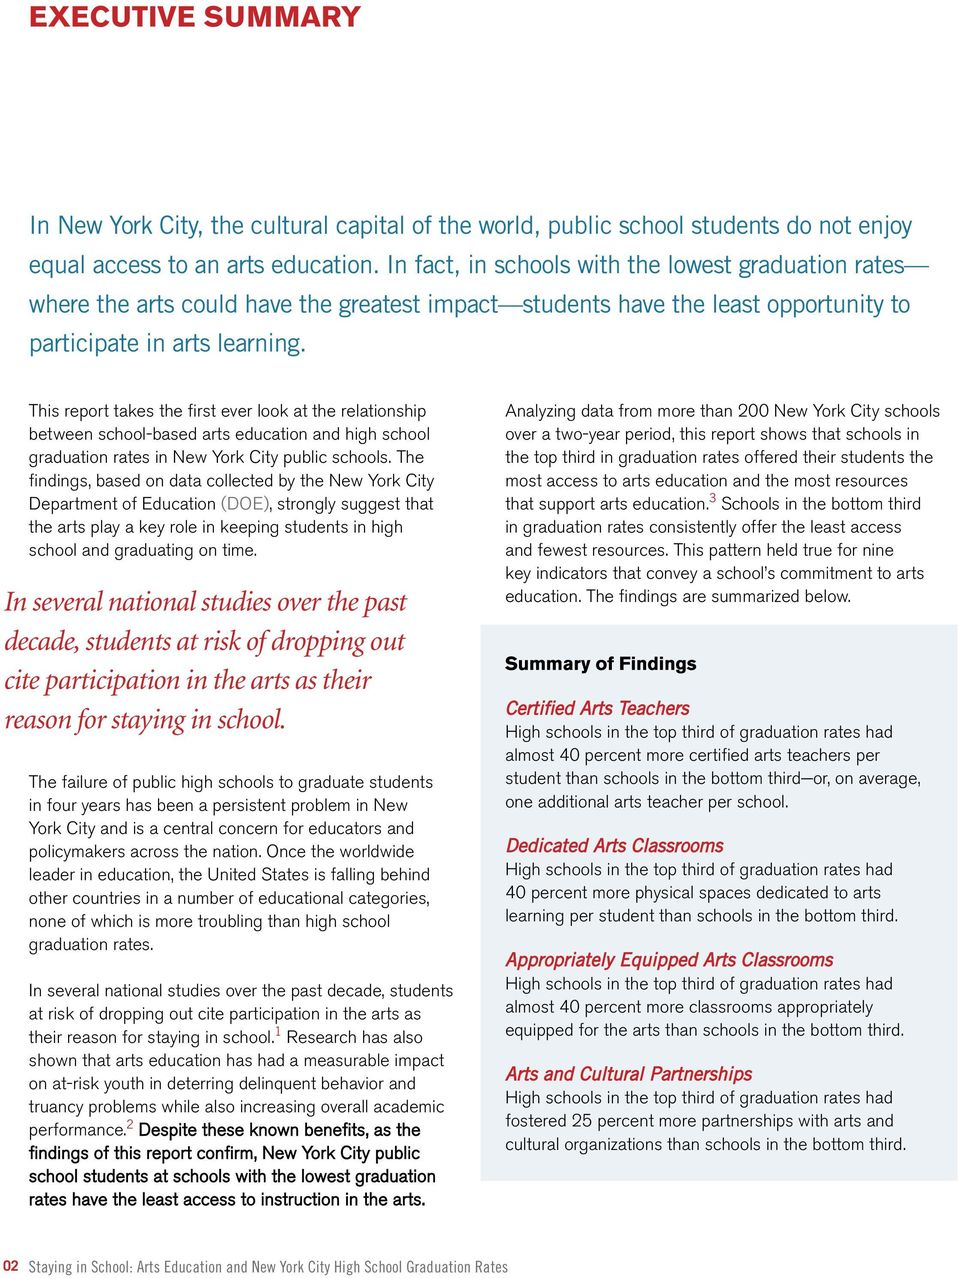 This report takes the first ever look at the relationship between school-based arts education and high school graduation rates in New York City public schools.